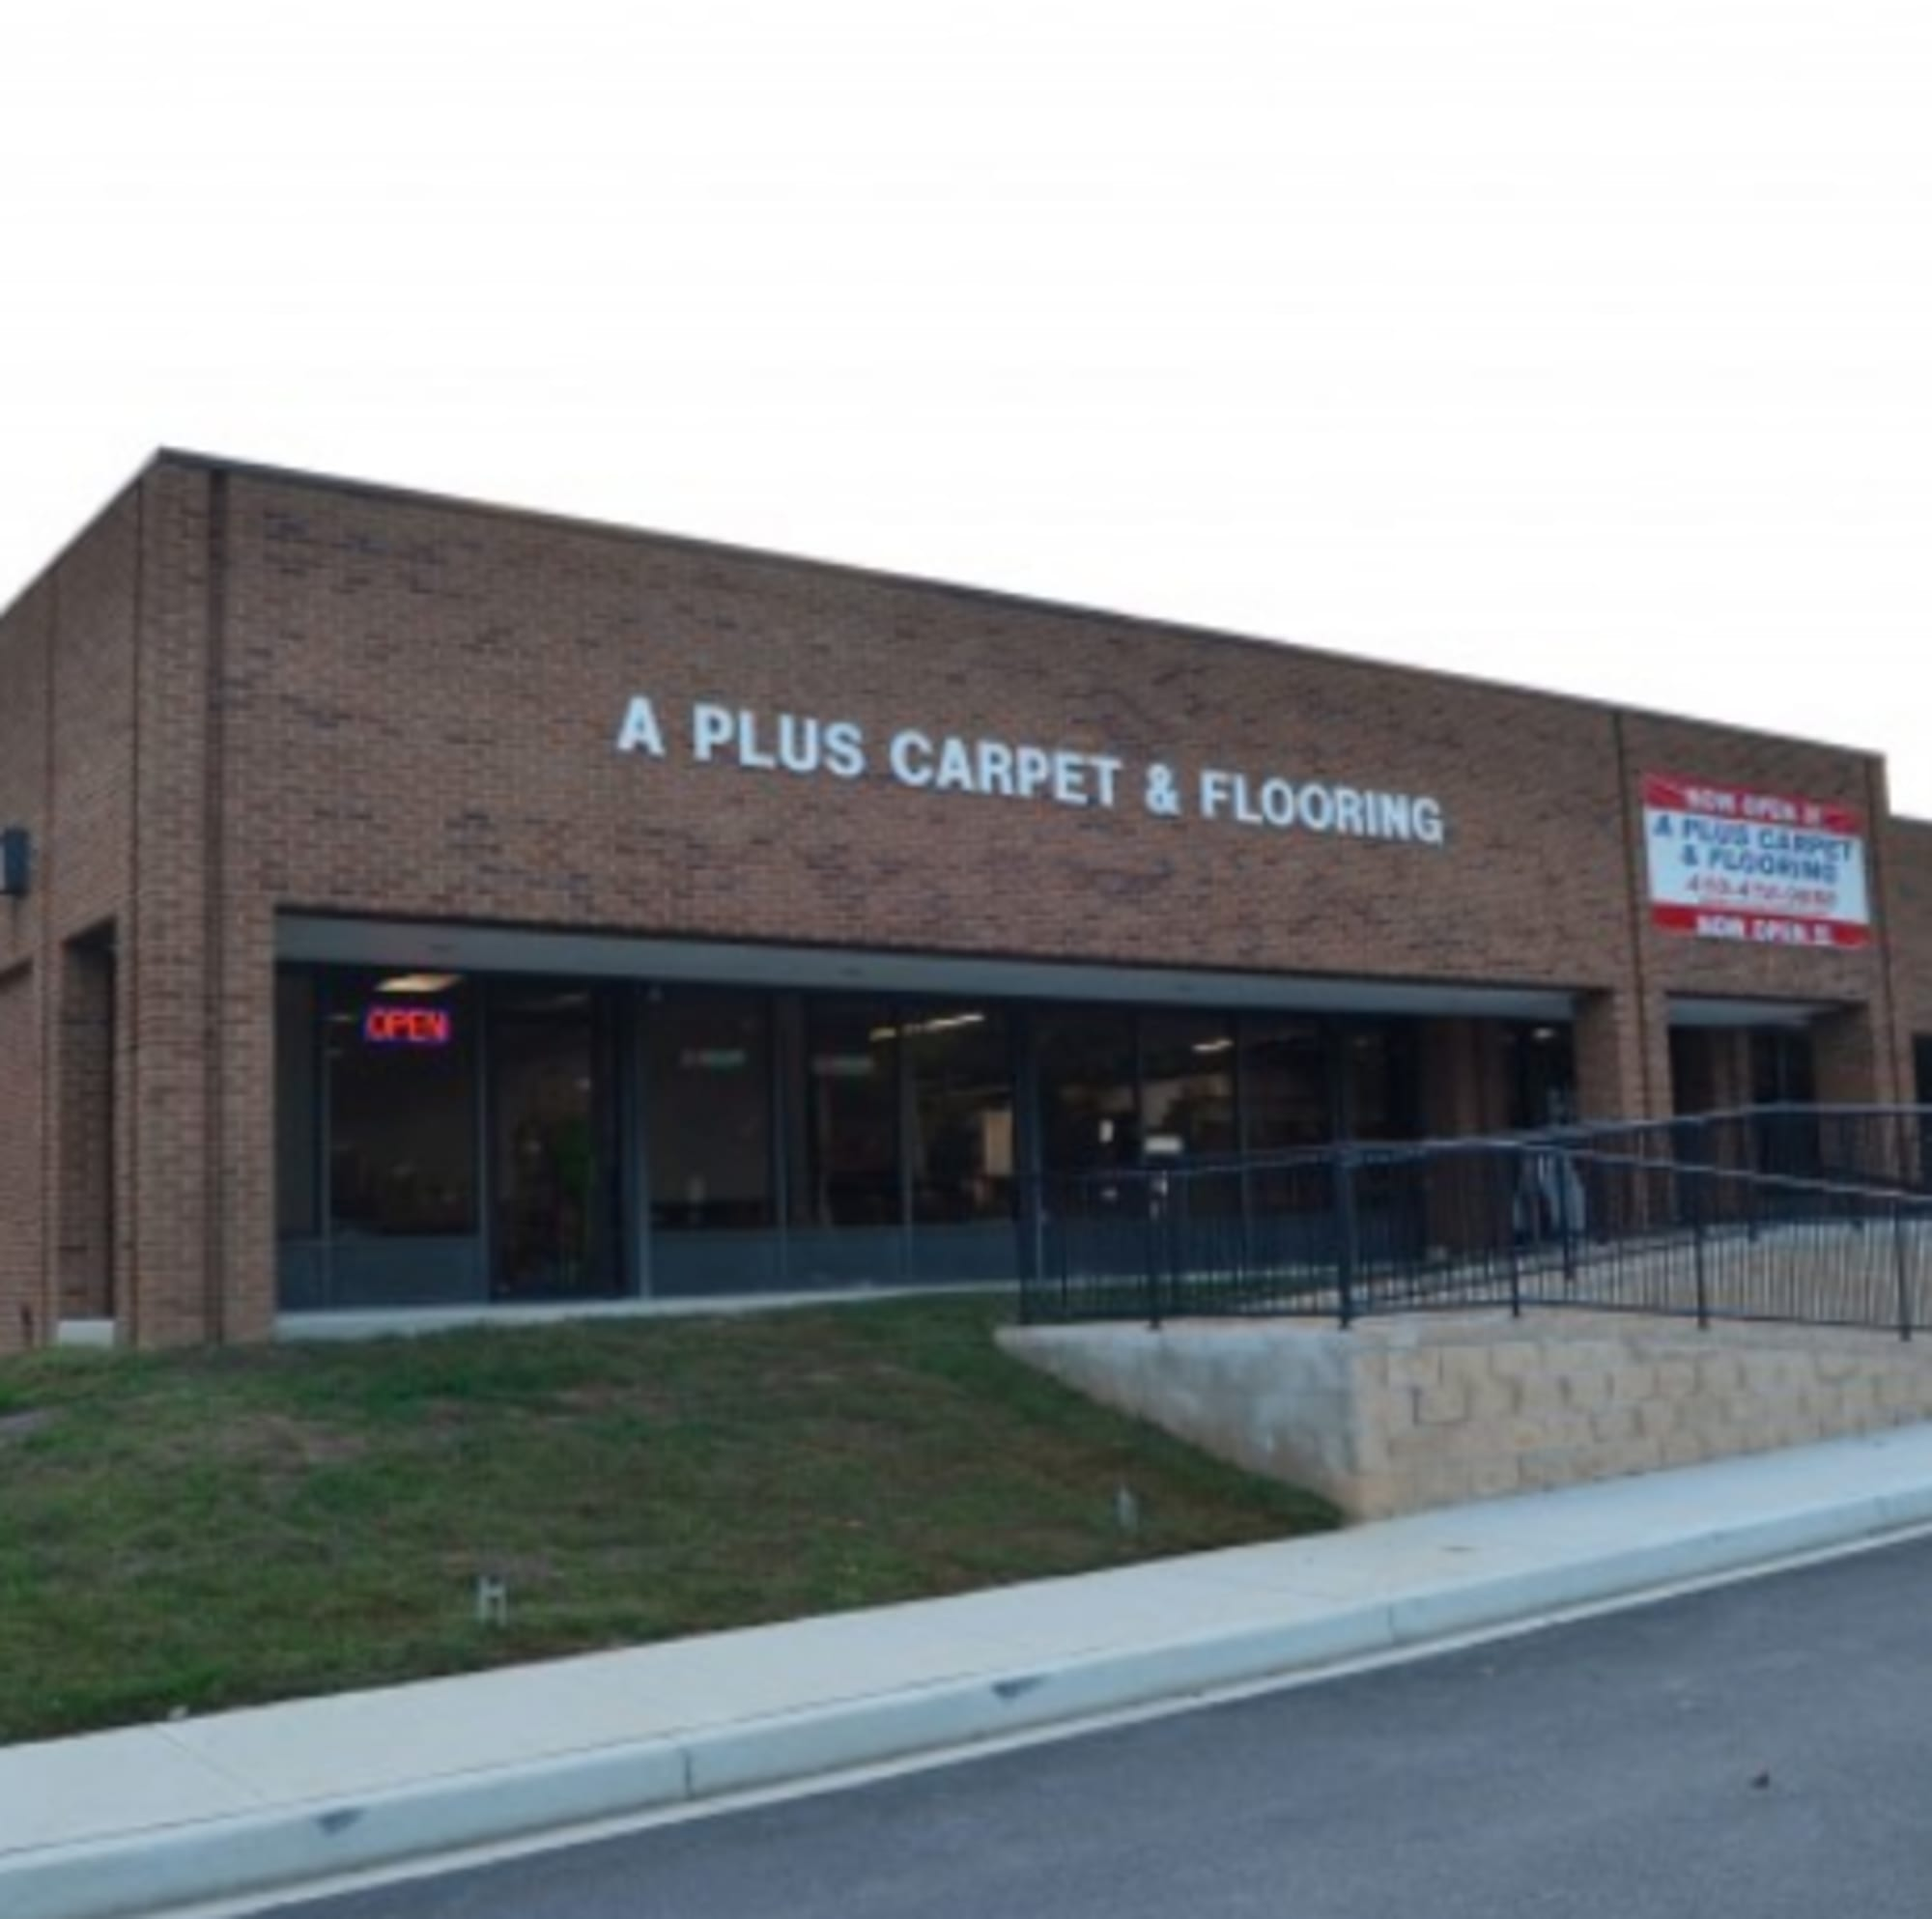 A Plus Carpet and Flooring - 9198 Red Branch Rd Columbia, MD 21045